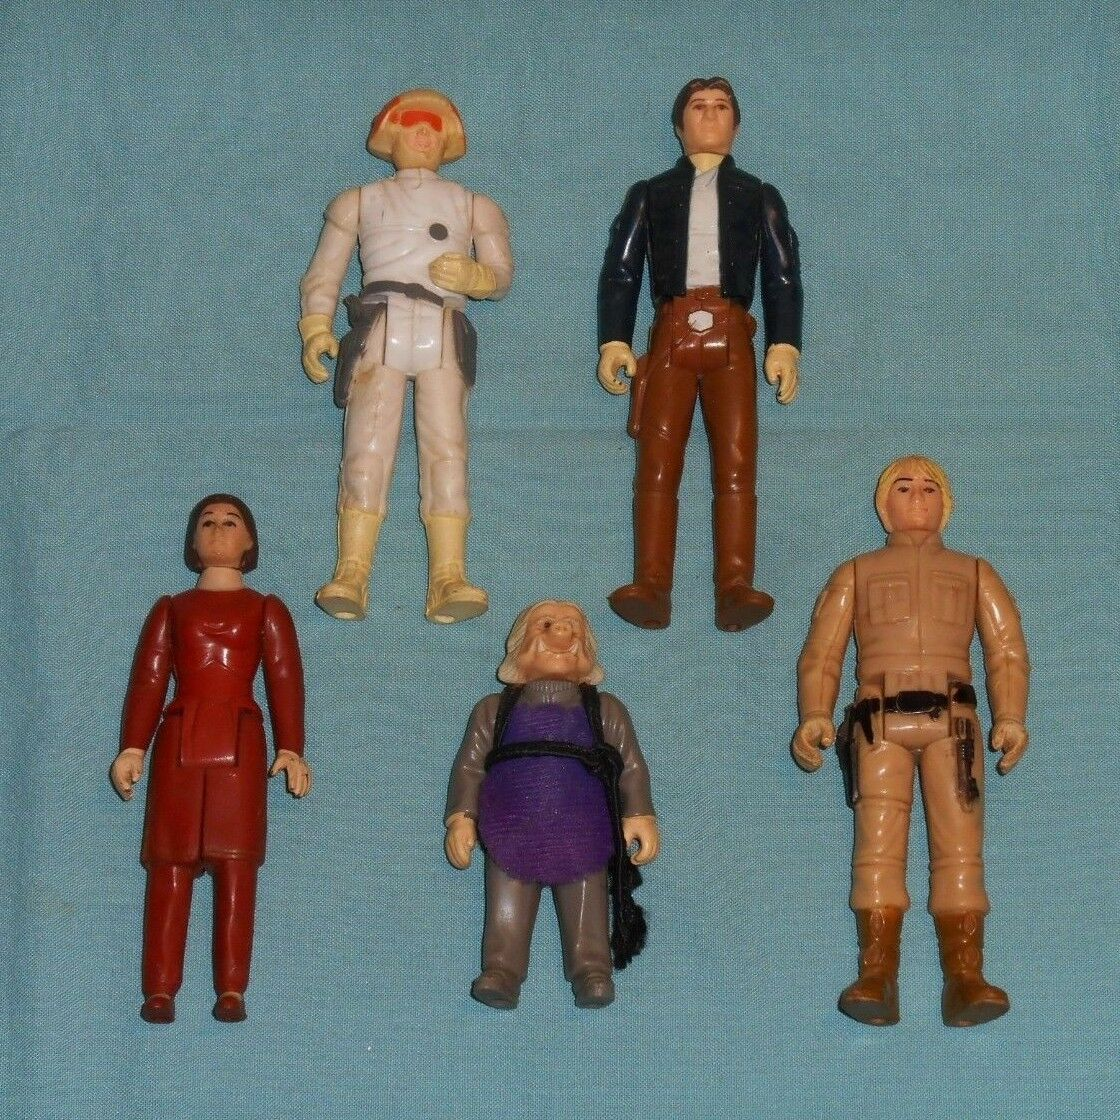 Vintage STAR WARS FIGURE LOT  176 Luke Leia Han Solo Bespin Ugnaught Lobot